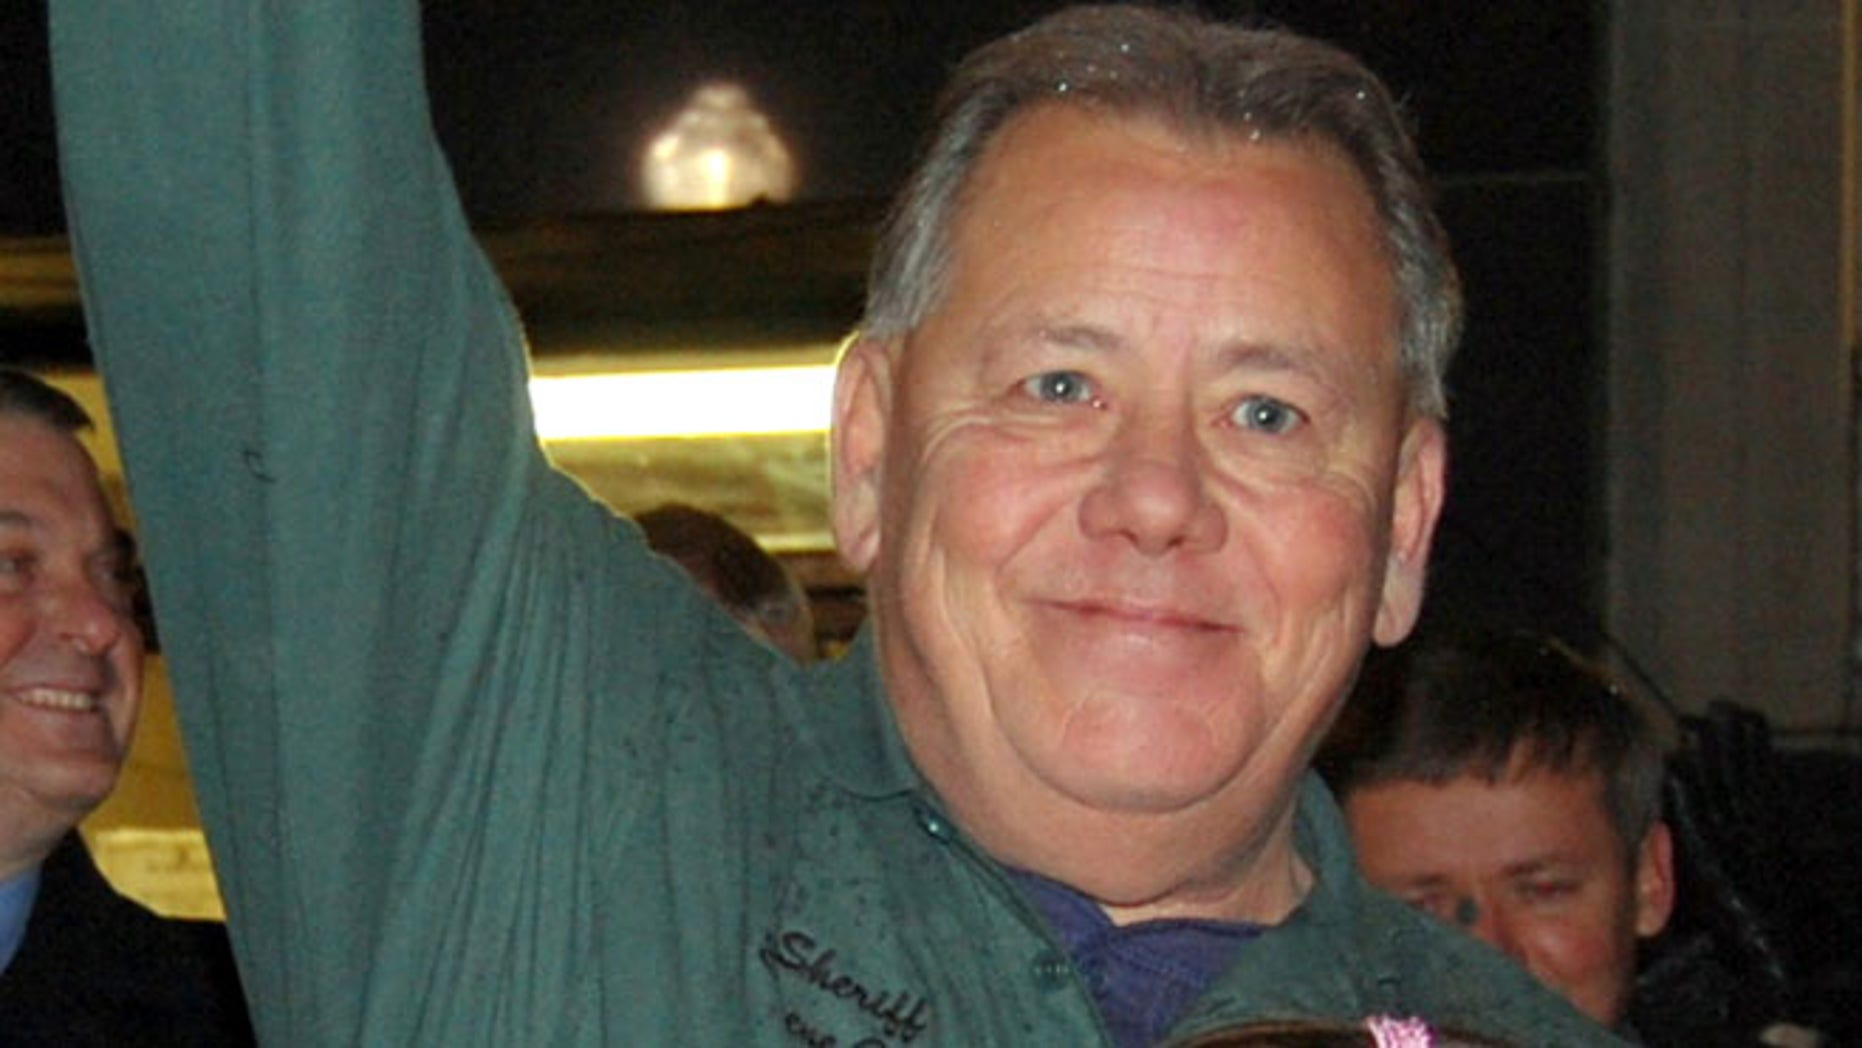 Mingo County Sheriff Eugene Crum was gunned down in the spot where he usually parked and ate lunch in Williamson, W.Va. His wife was set to fly back home after visiting the couple's children in Indiana.